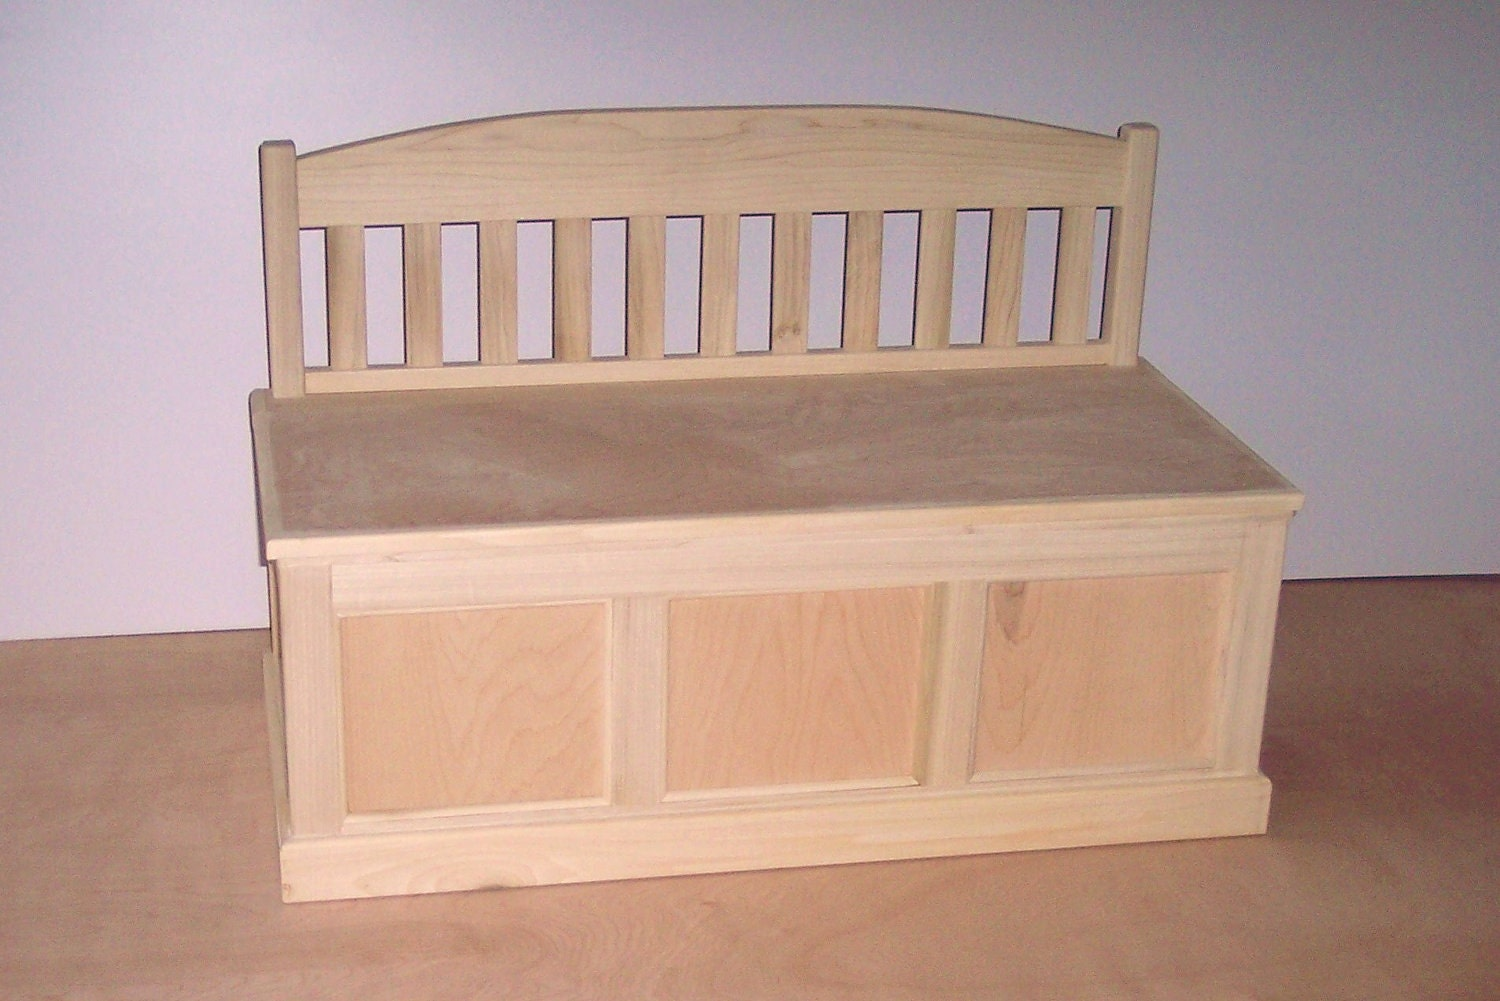 Toy Box Bench Plans Wooden toy chest - unfinished